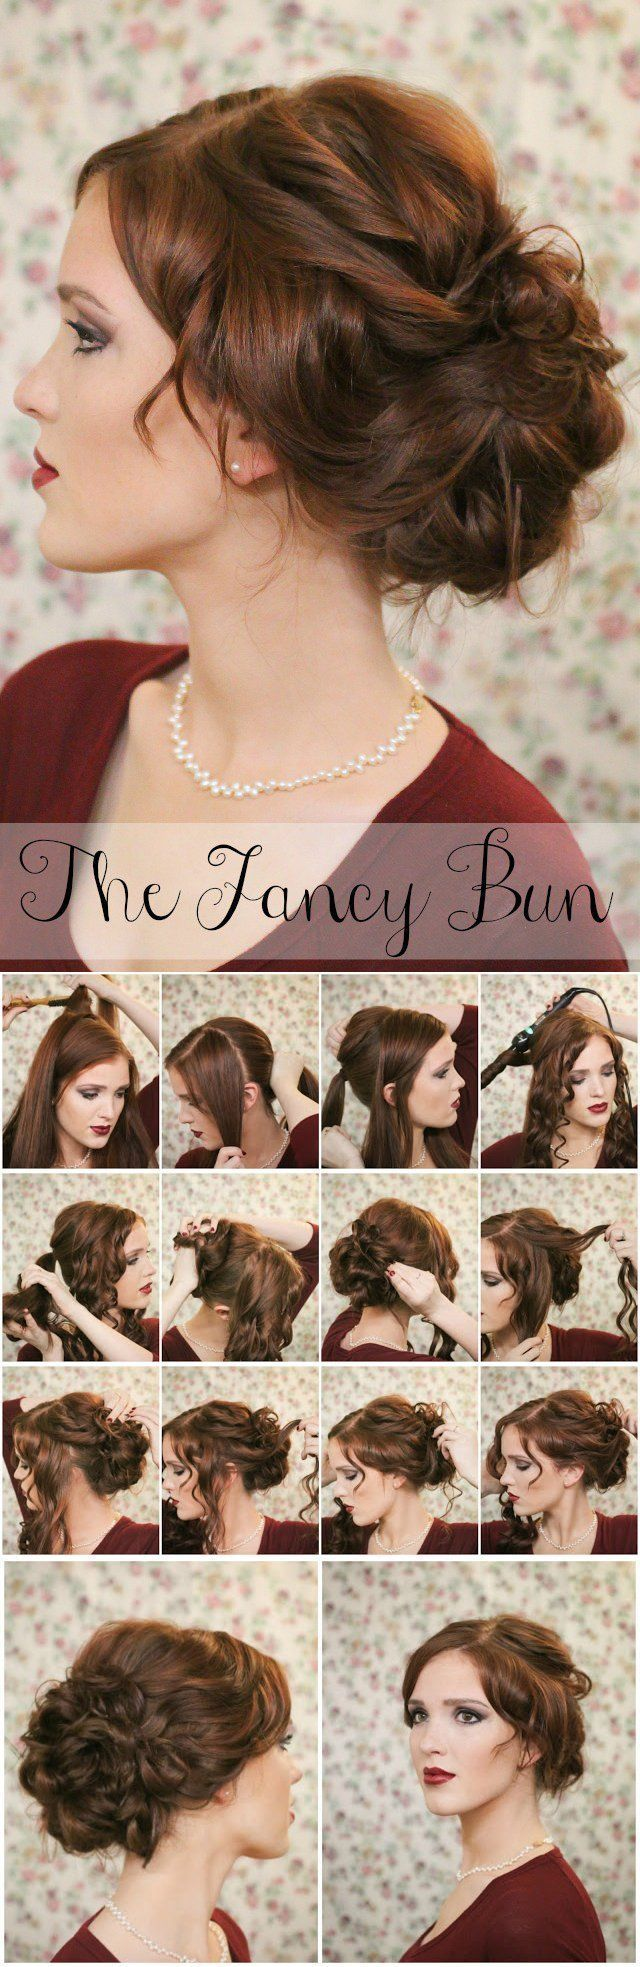 Super Straightforward Knotted Bun Updo und Easy Bun Frisur Tutorials - #bun #Easy #Frisur #Knotted #Straightforward